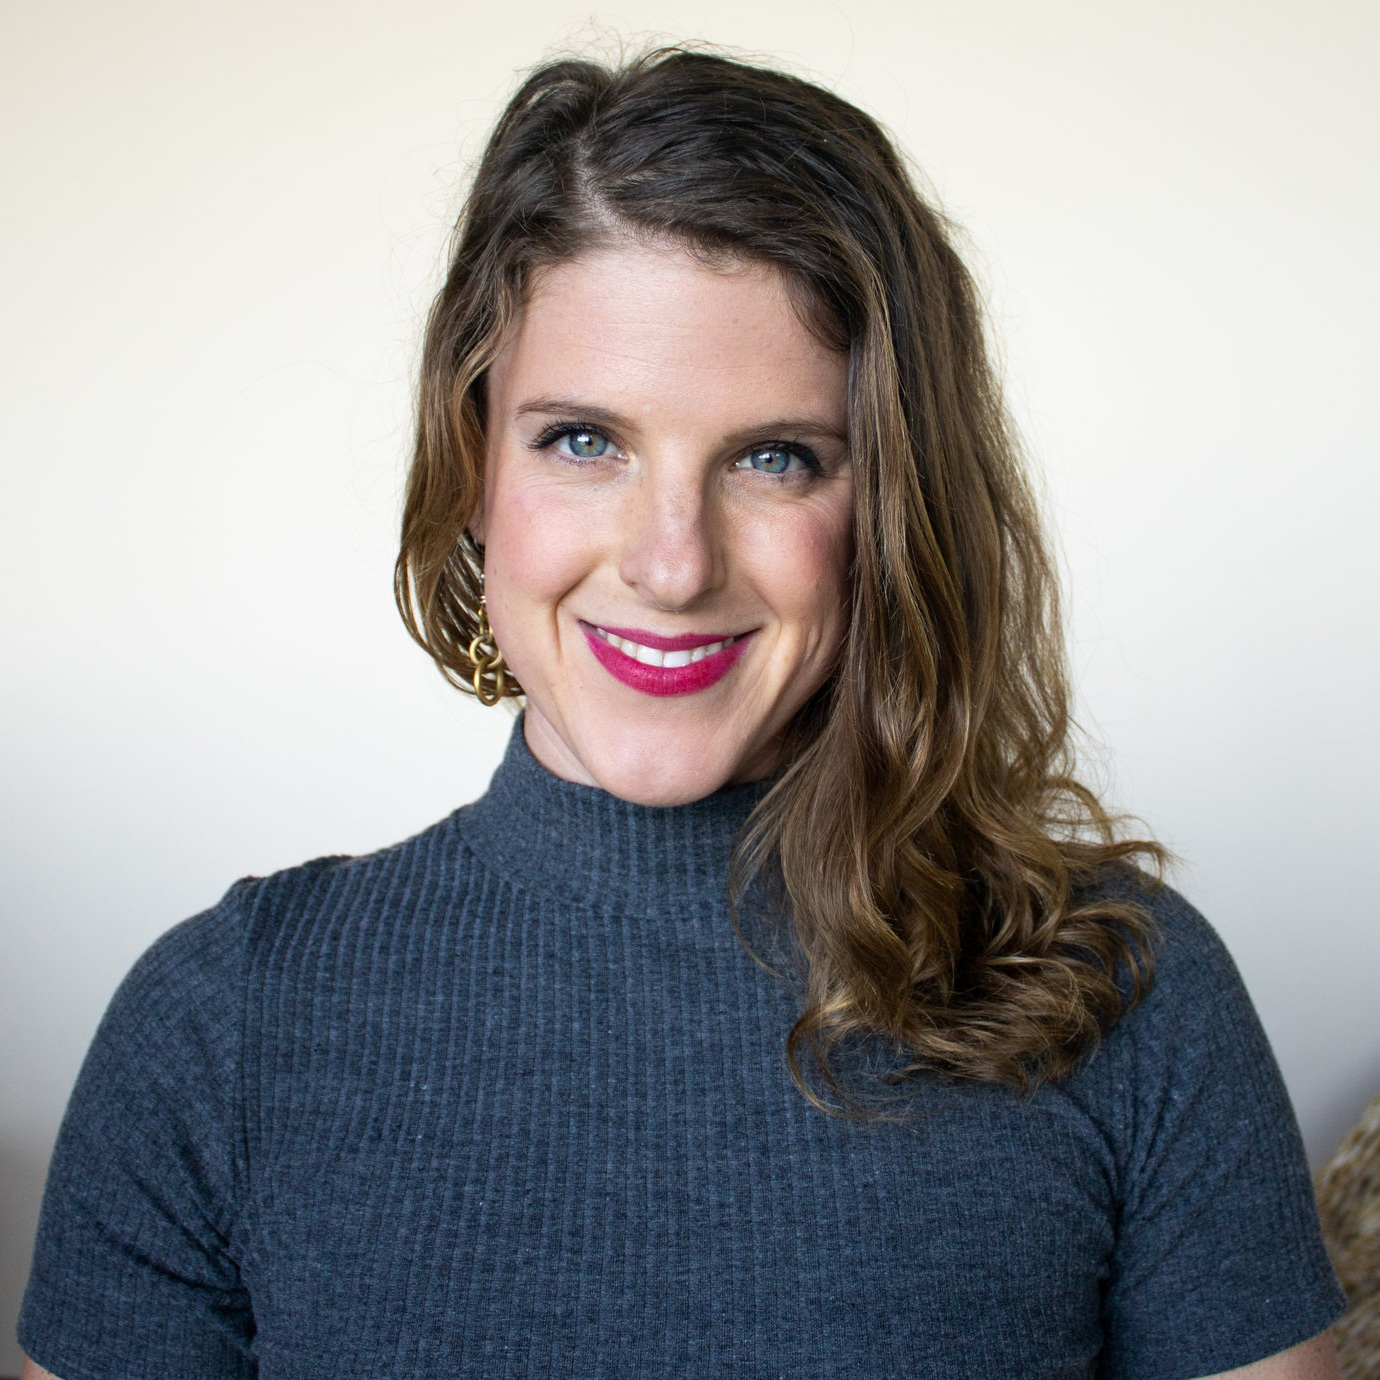 I'M MELANIE! - I've been making health entrepreneurs stand out online since 2017.I created Functional Media because so many talented Functional Medicine professionals are struggling to stay afloat while managing 36701.56 things that involves having a successful business & a well balanced personal life